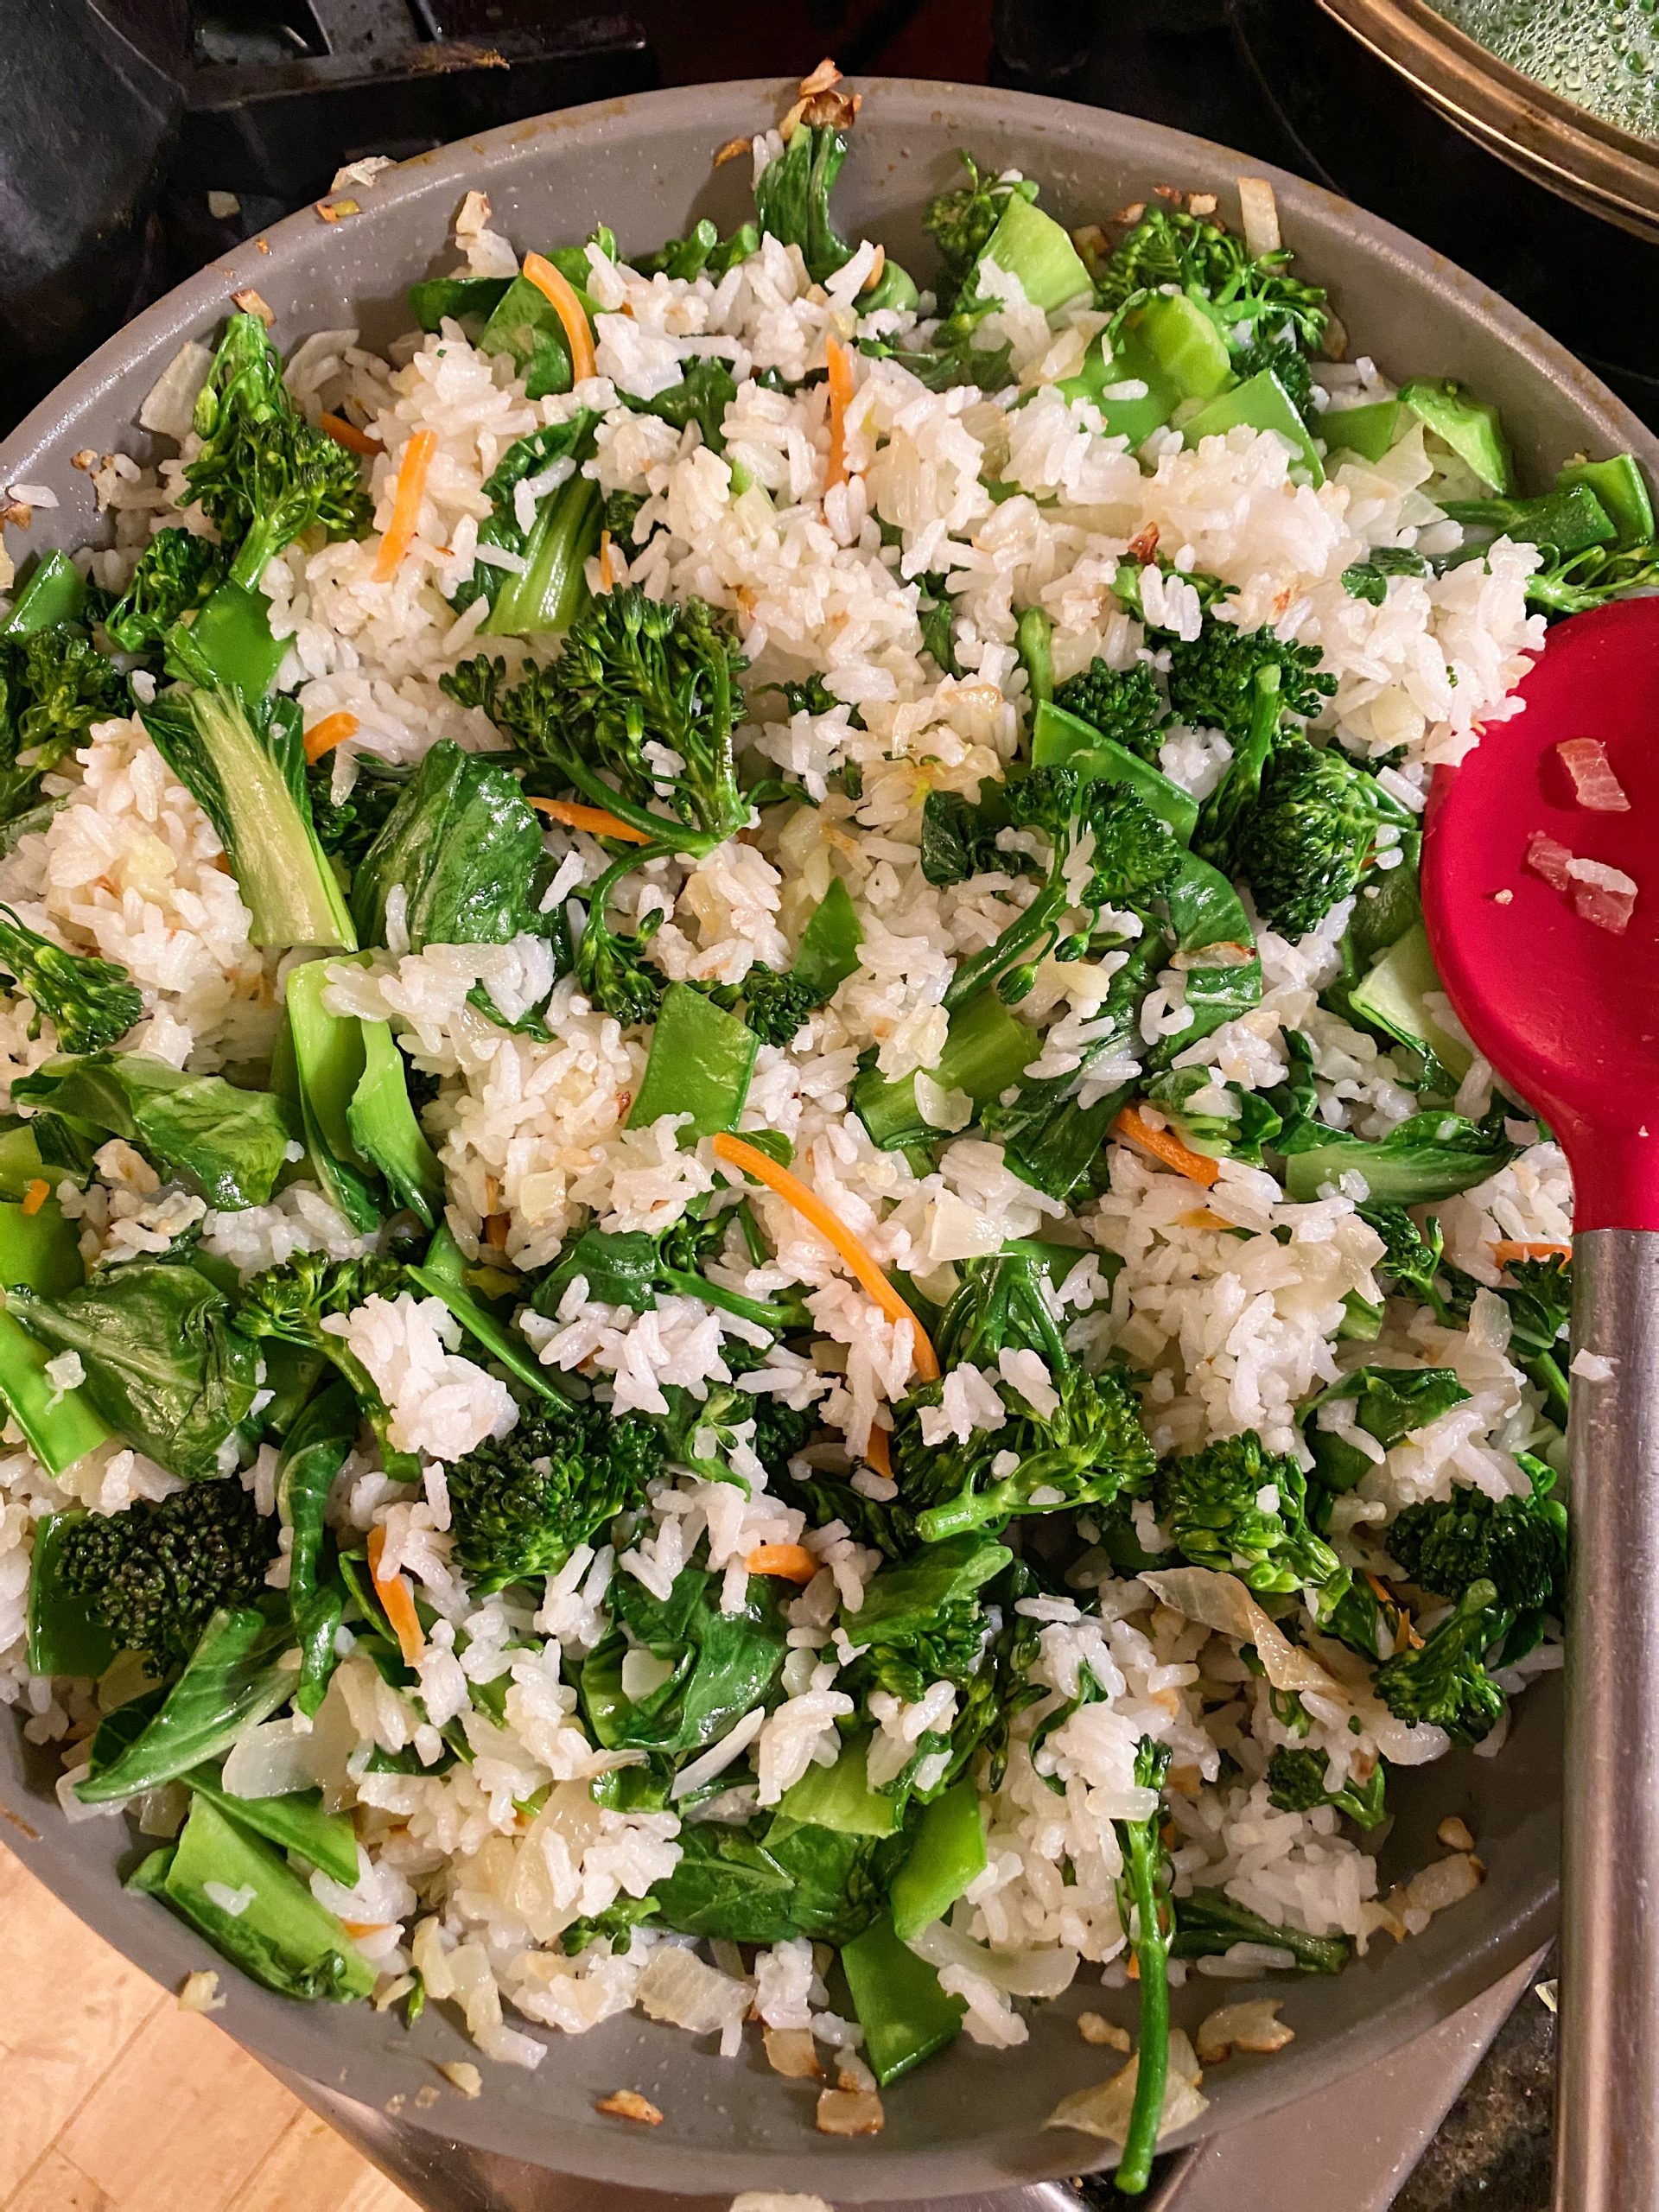 gluten free vegetable fried rice #glutenfree #glutenfreerecipes www.healthygffamily.com